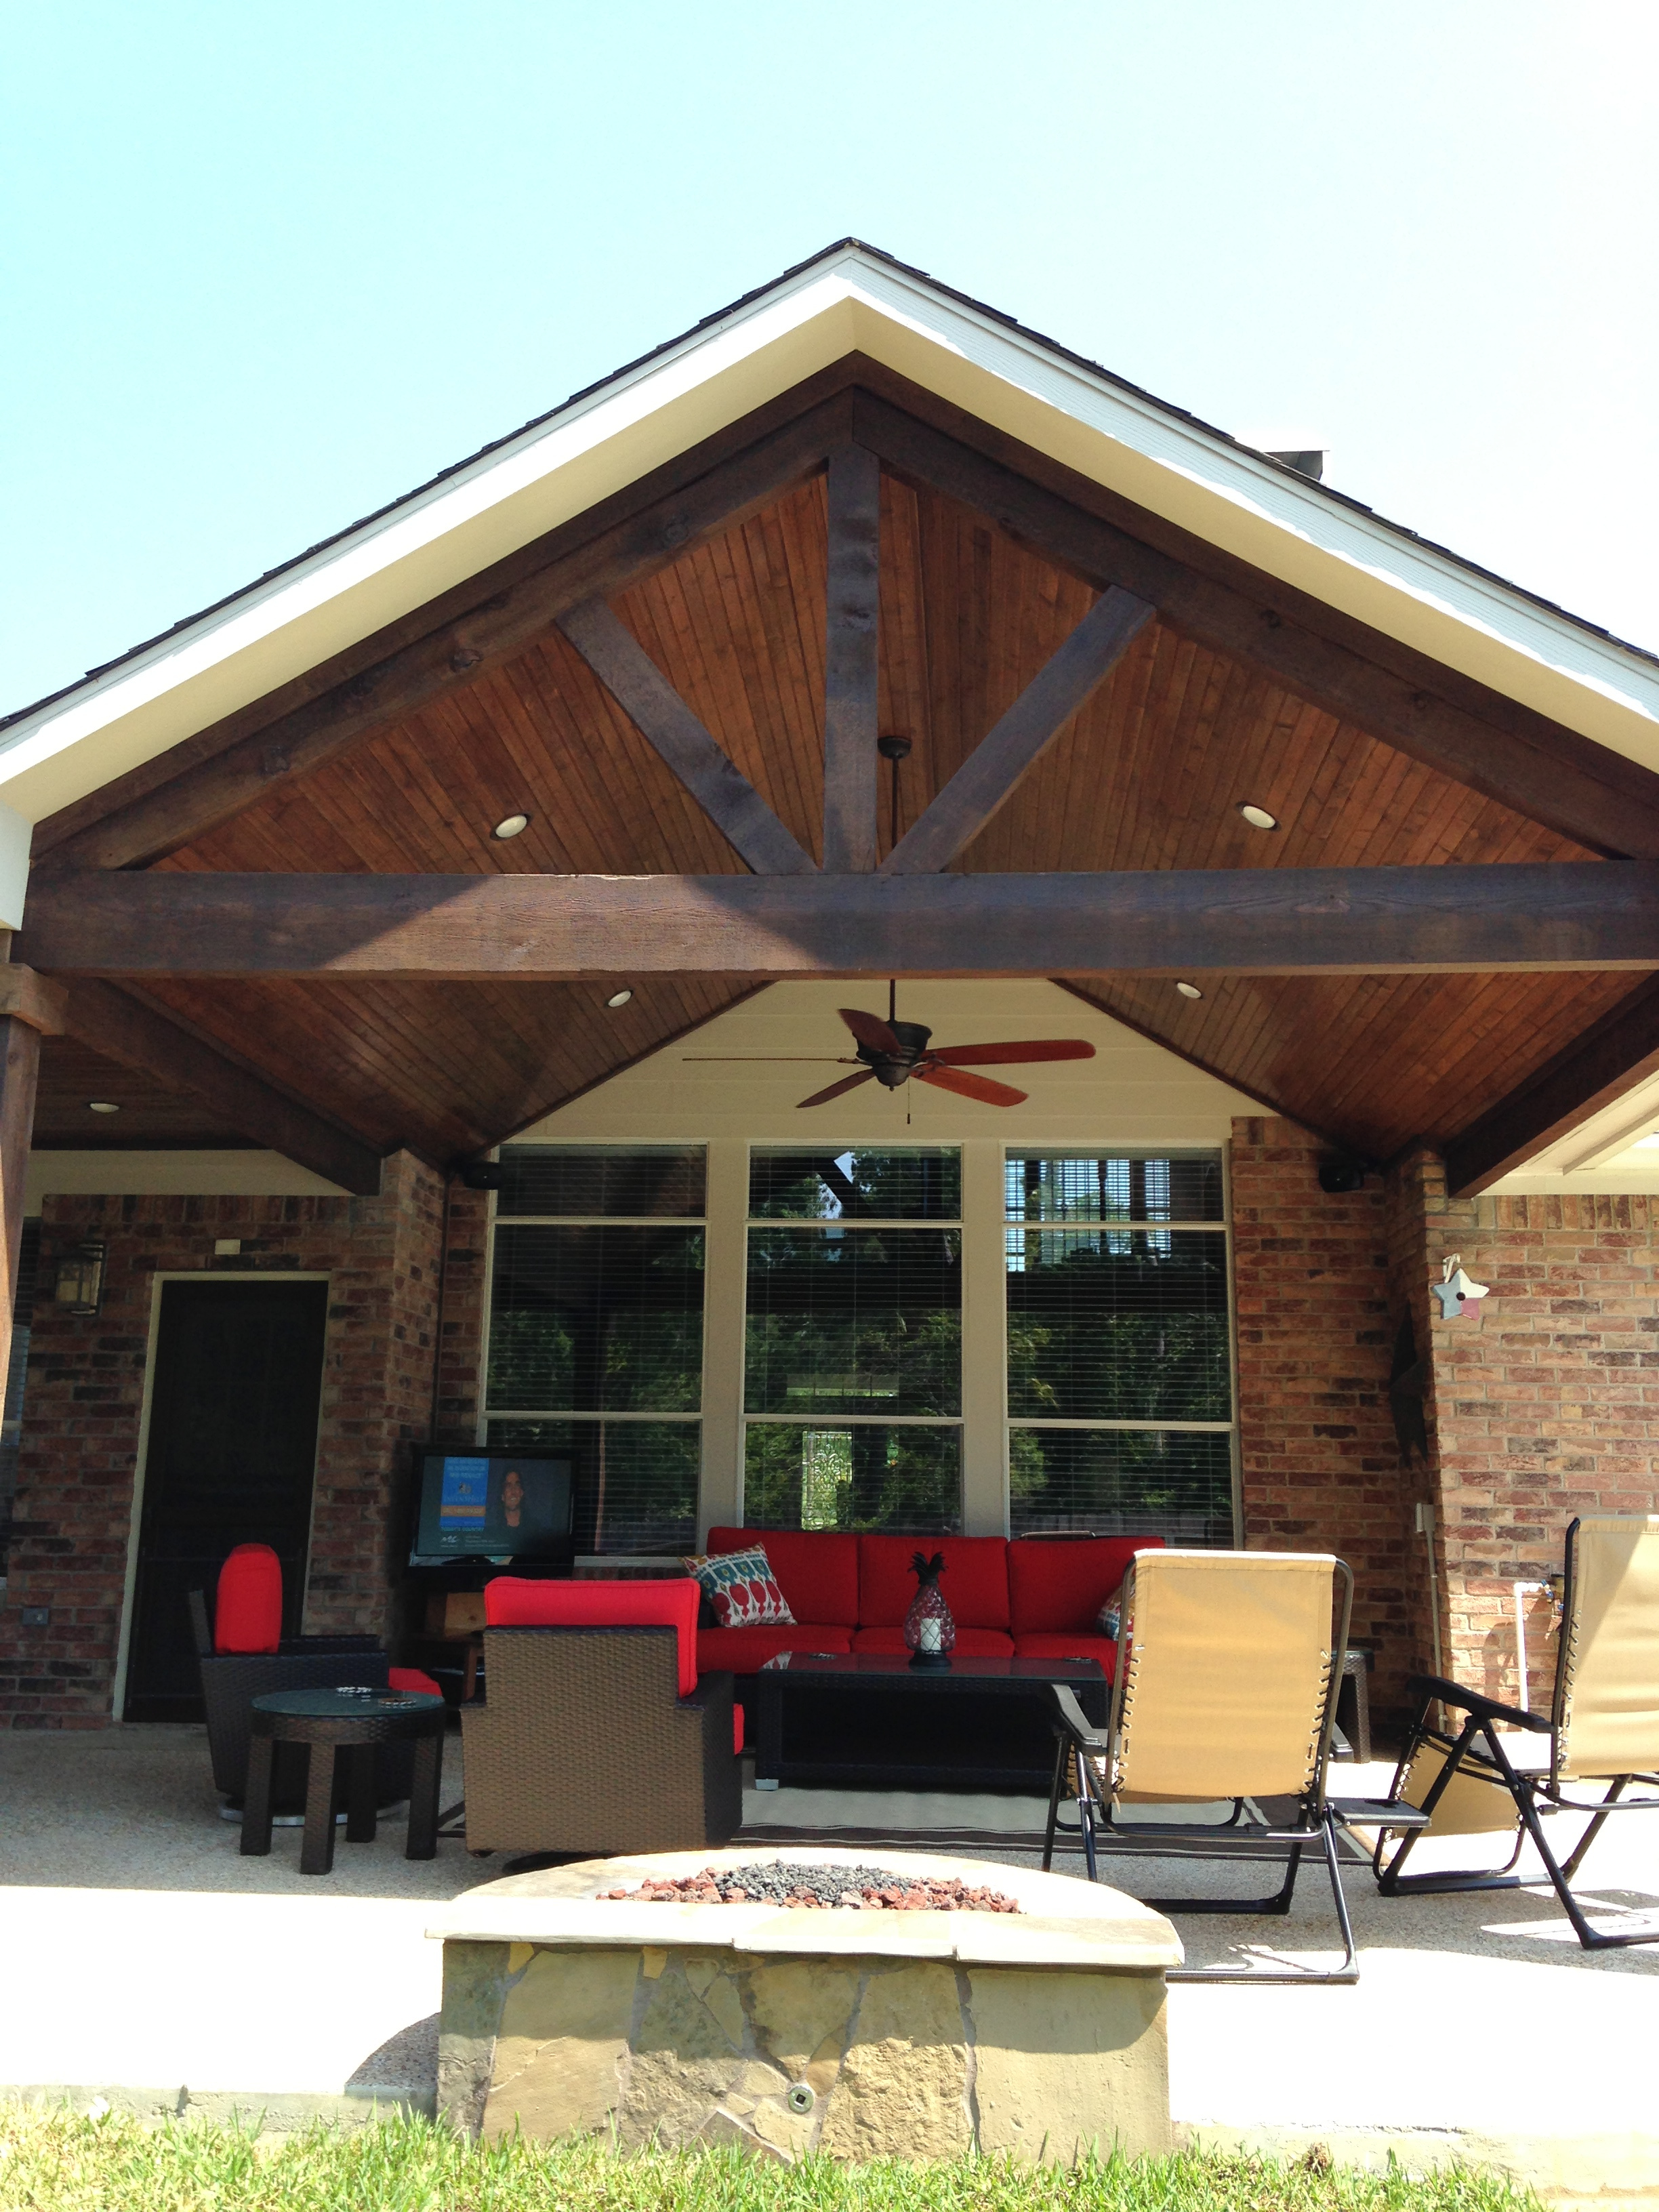 imagejpg2448x3264 224 mb - Wood Under Porch Ceiling